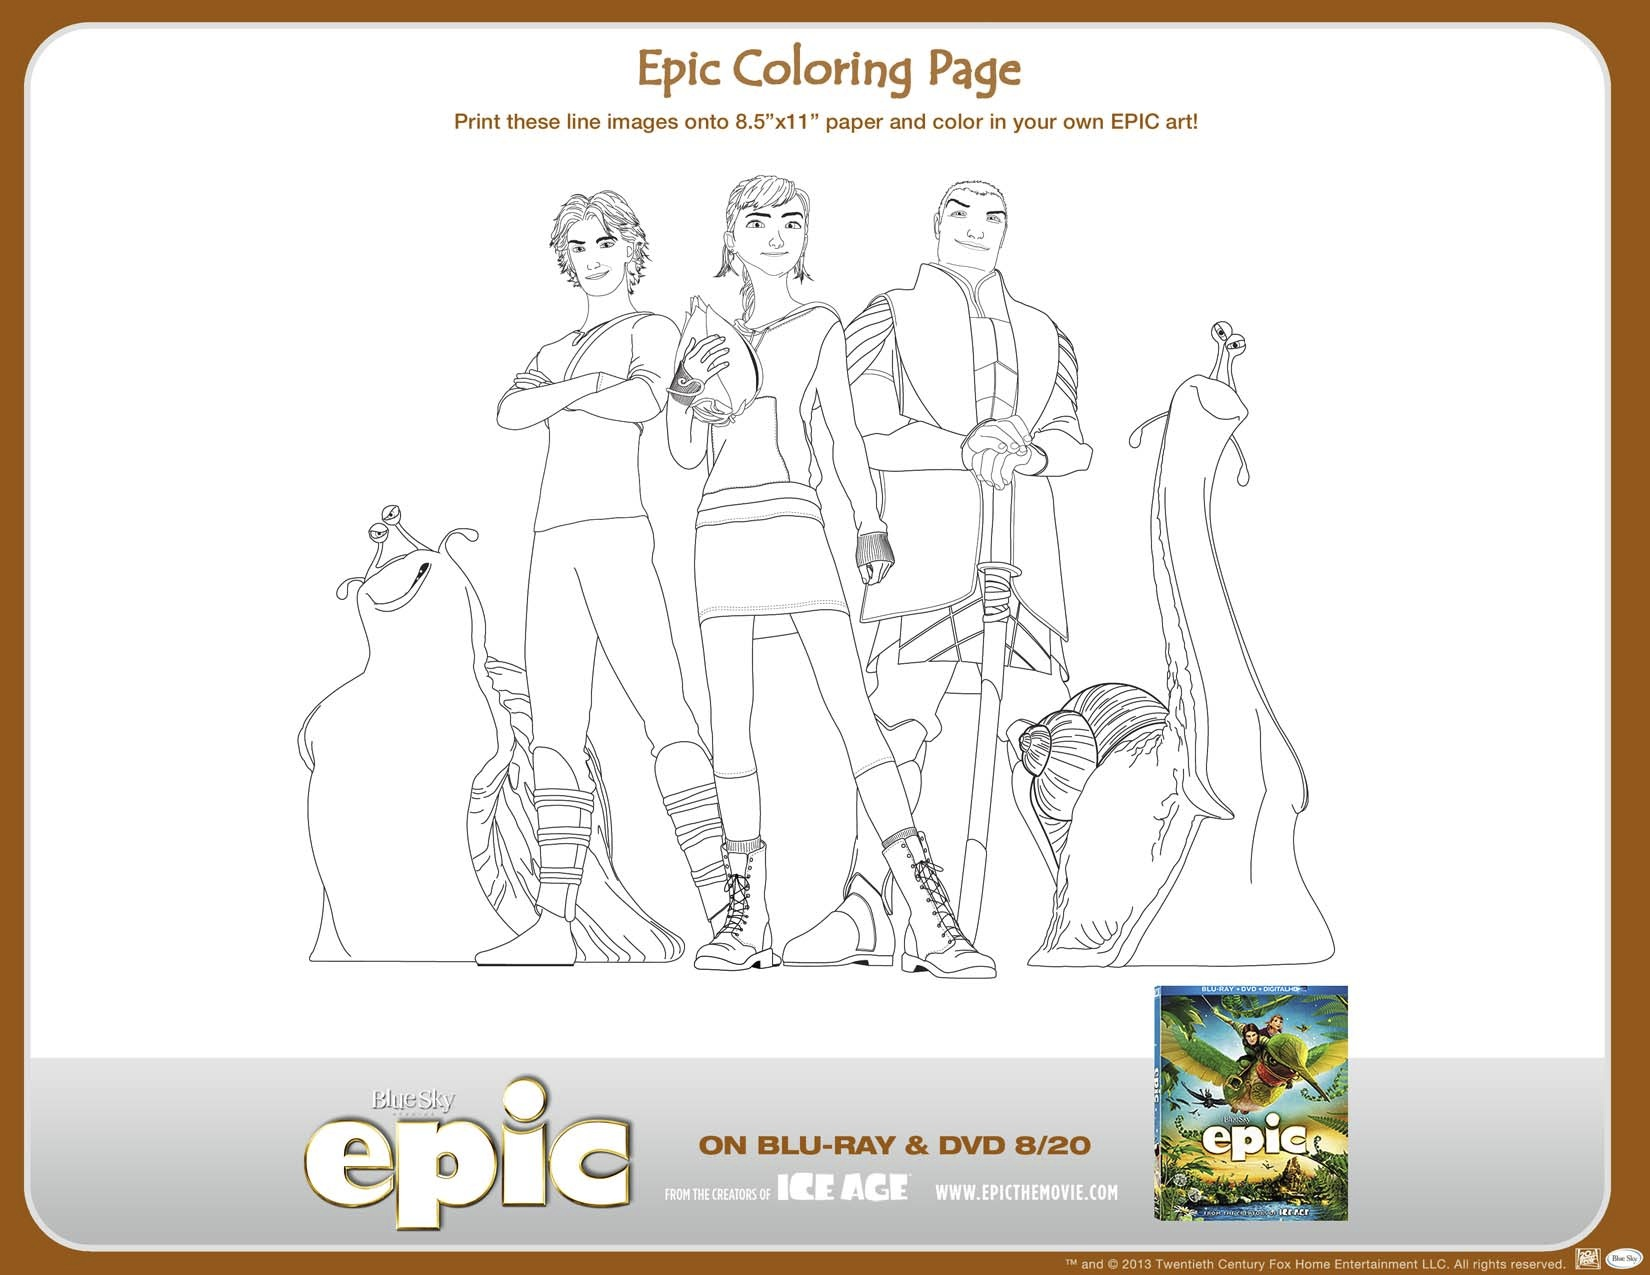 imagesepic_colorpage_group copy